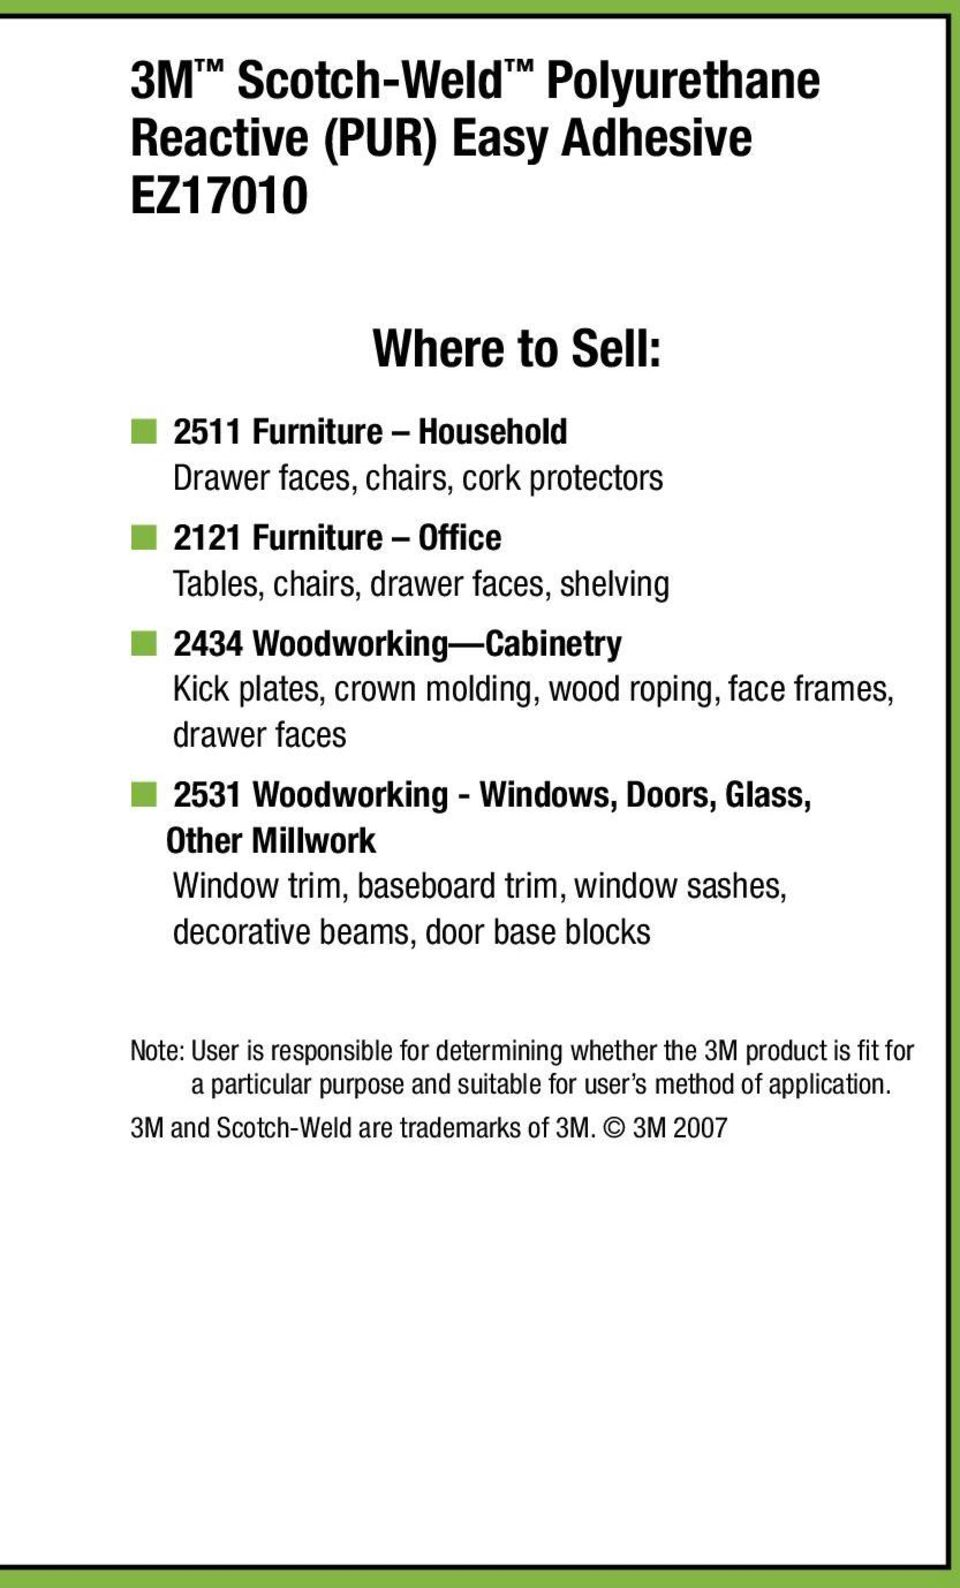 faces n 2531 Woodworking - Windows, Doors, Glass, Other Millwork Window trim, baseboard trim, window sashes, decorative beams, door base